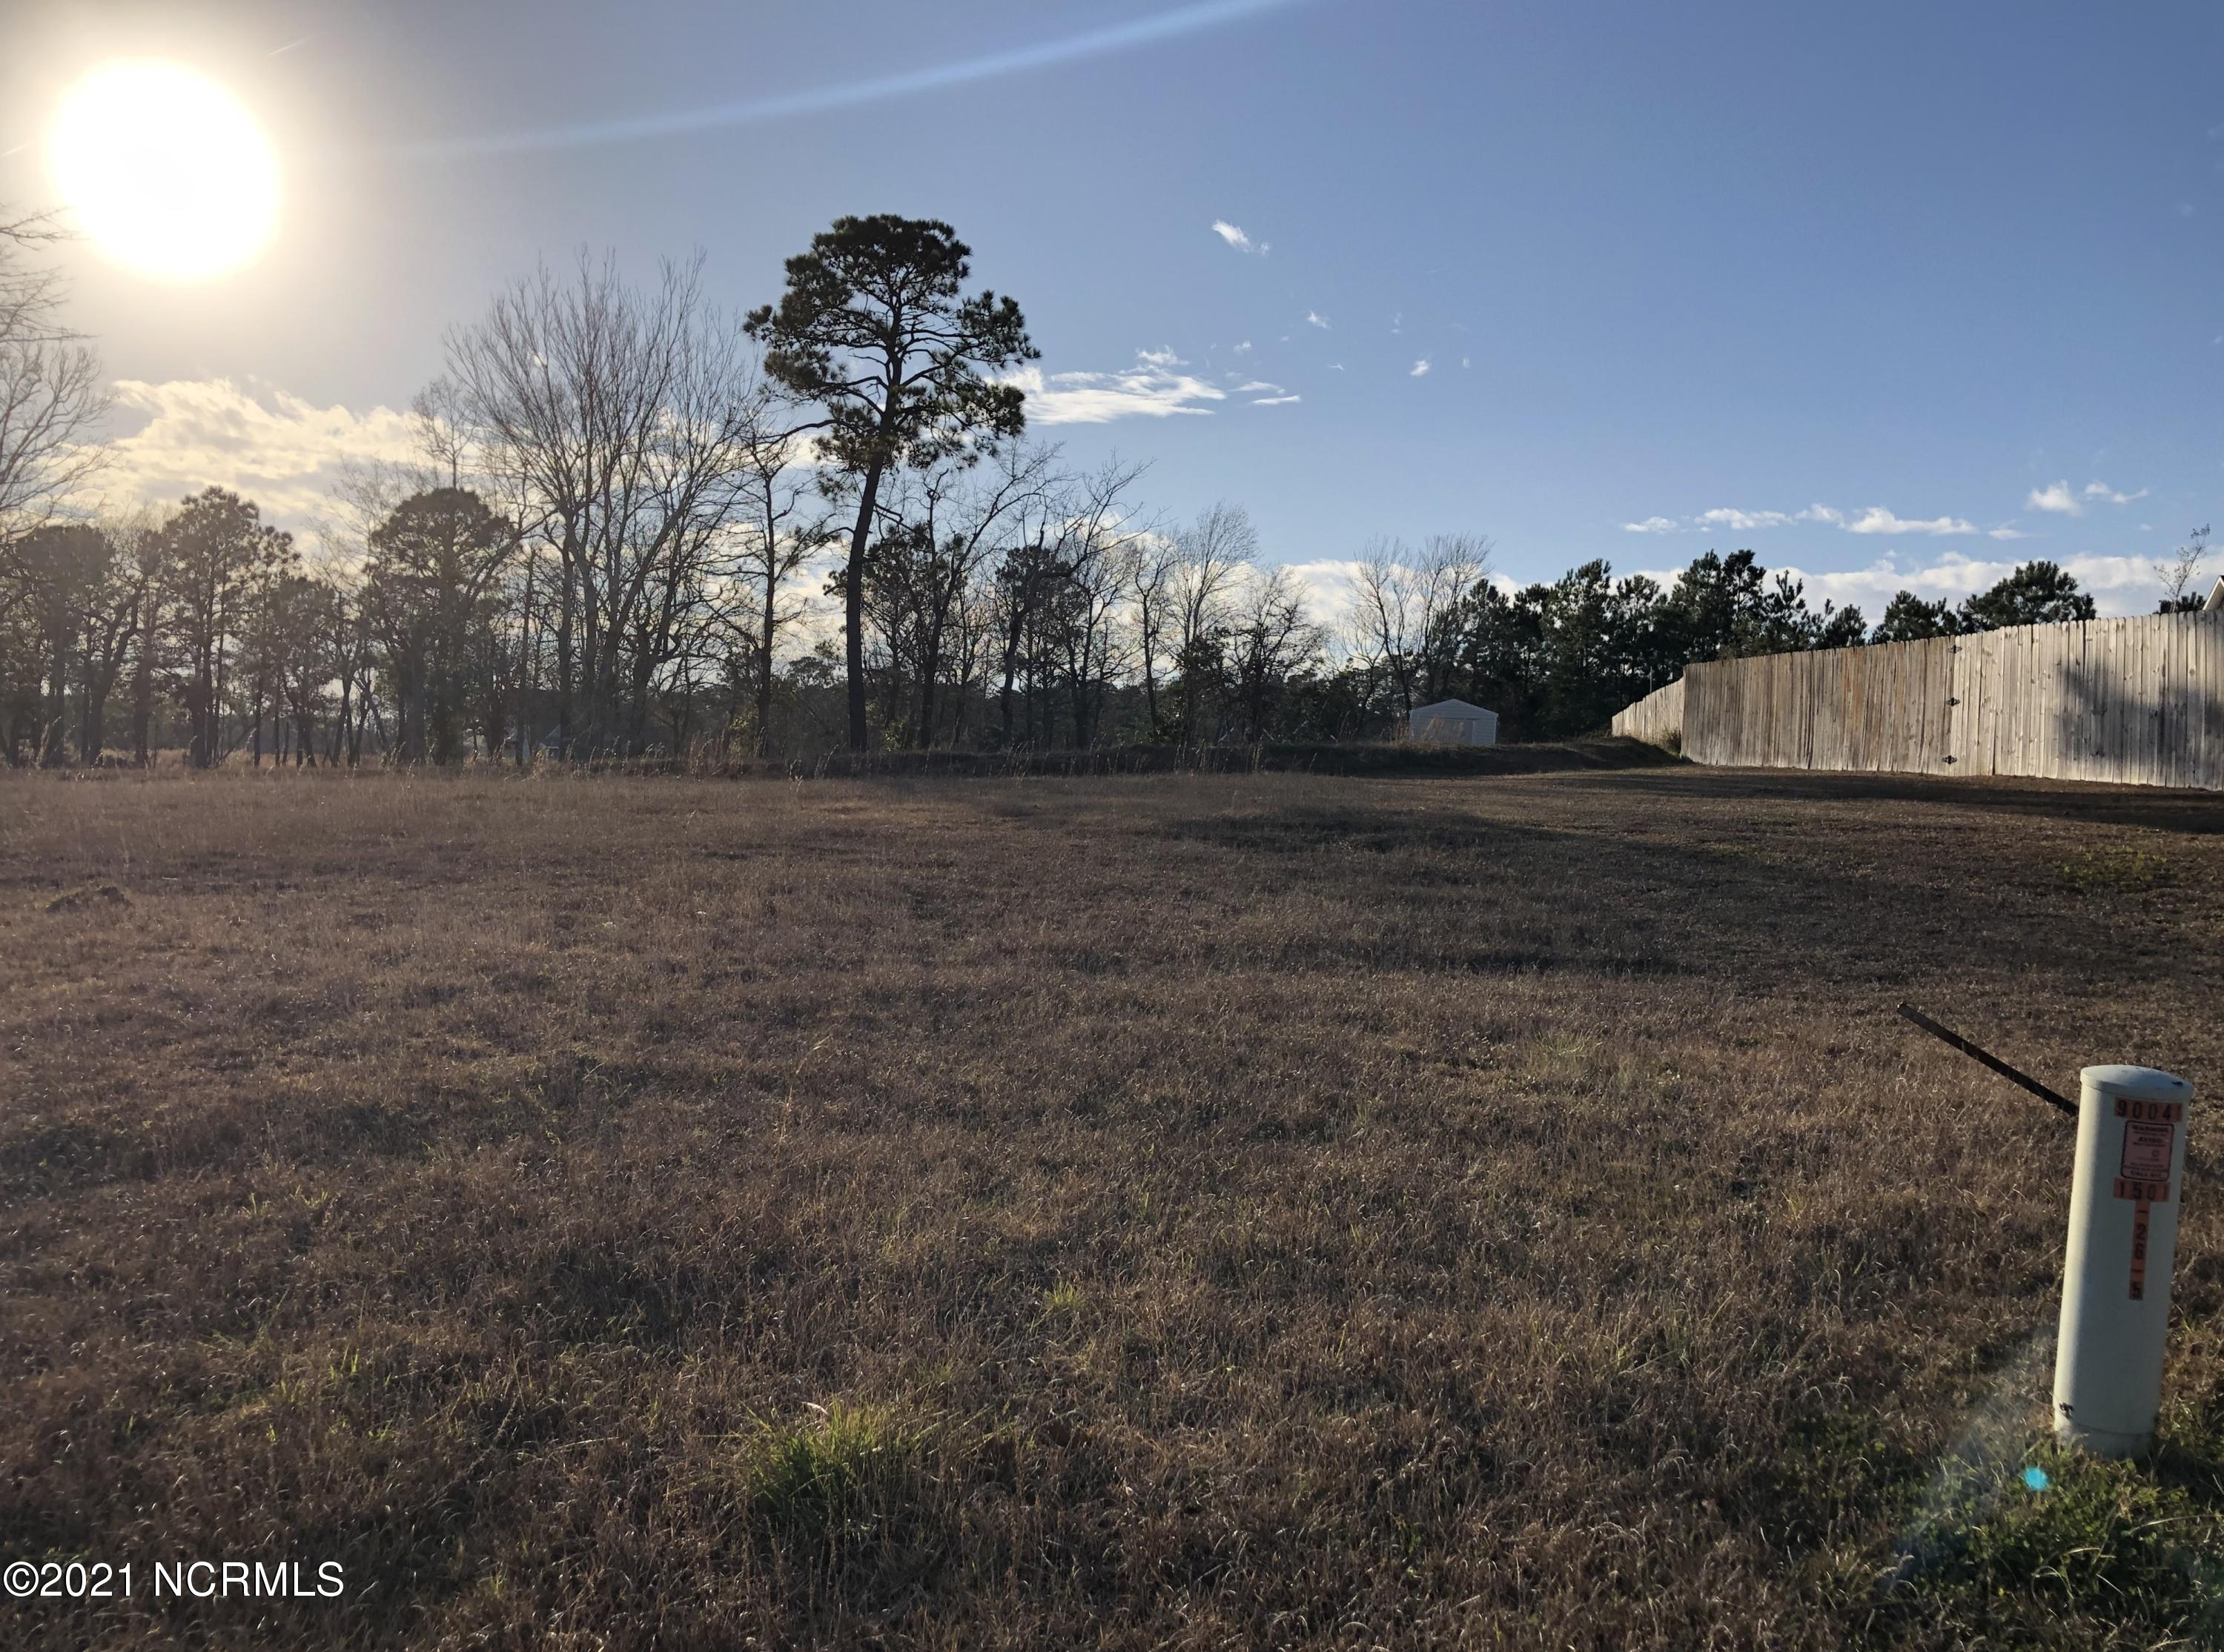 Two acre residential building lot for sale in Halls Creek North! Just minutes from historic Swansboro and the beach. Lot has frontage on the marsh and creek. Great for kayaks! Call for more information today!